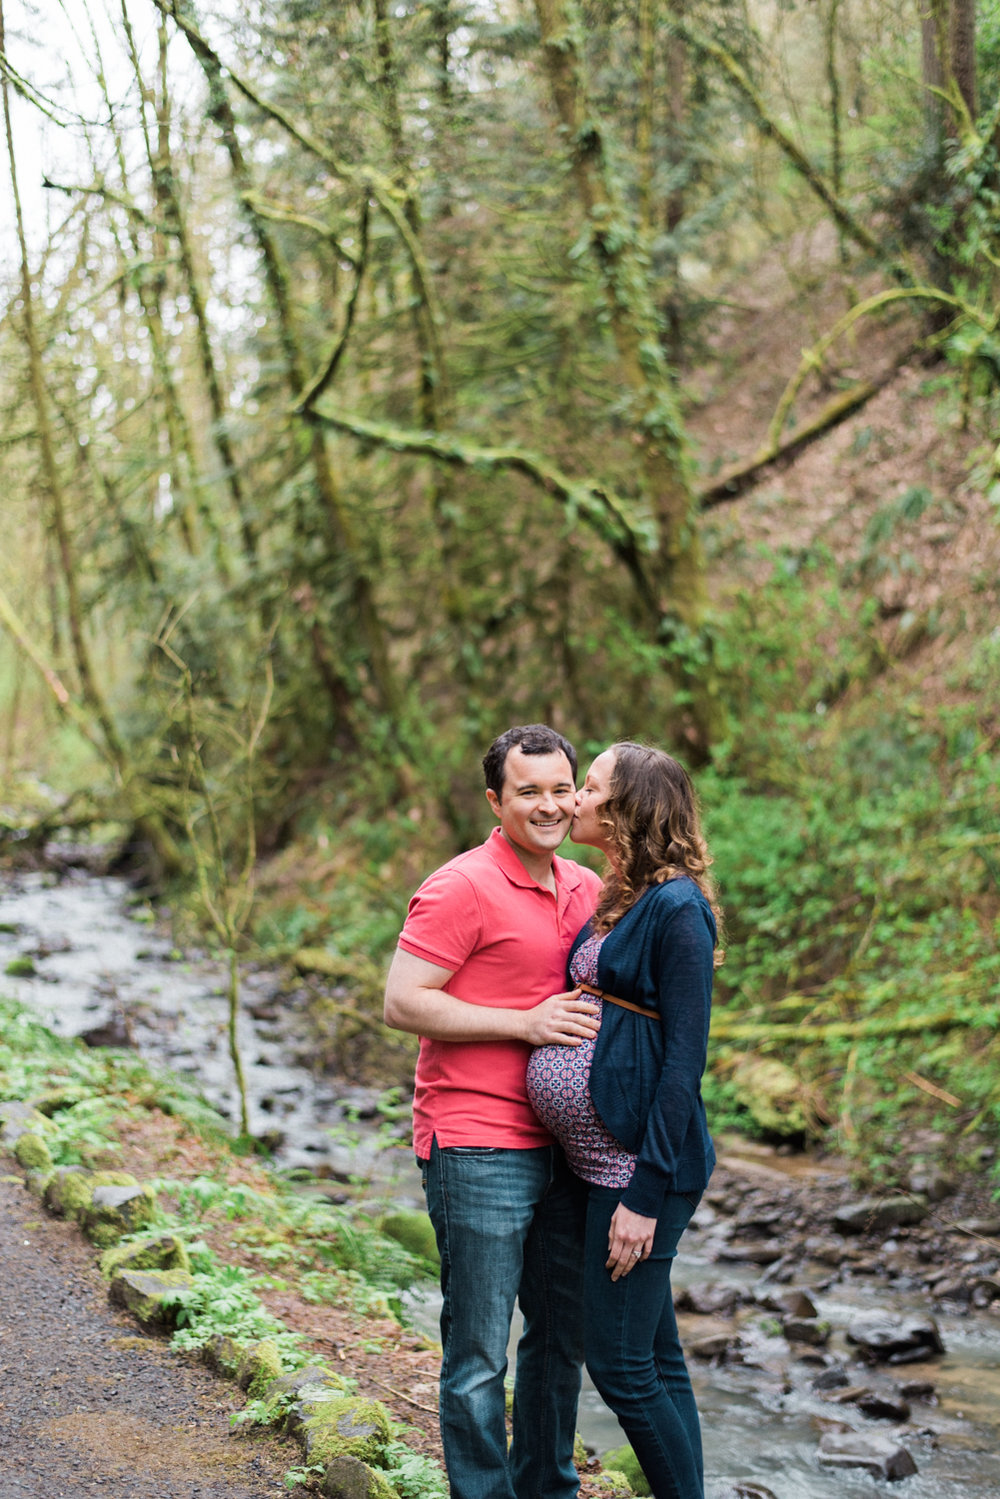 forest-park-maternity-photography-portland-shelley-marie-photo-09.jpg